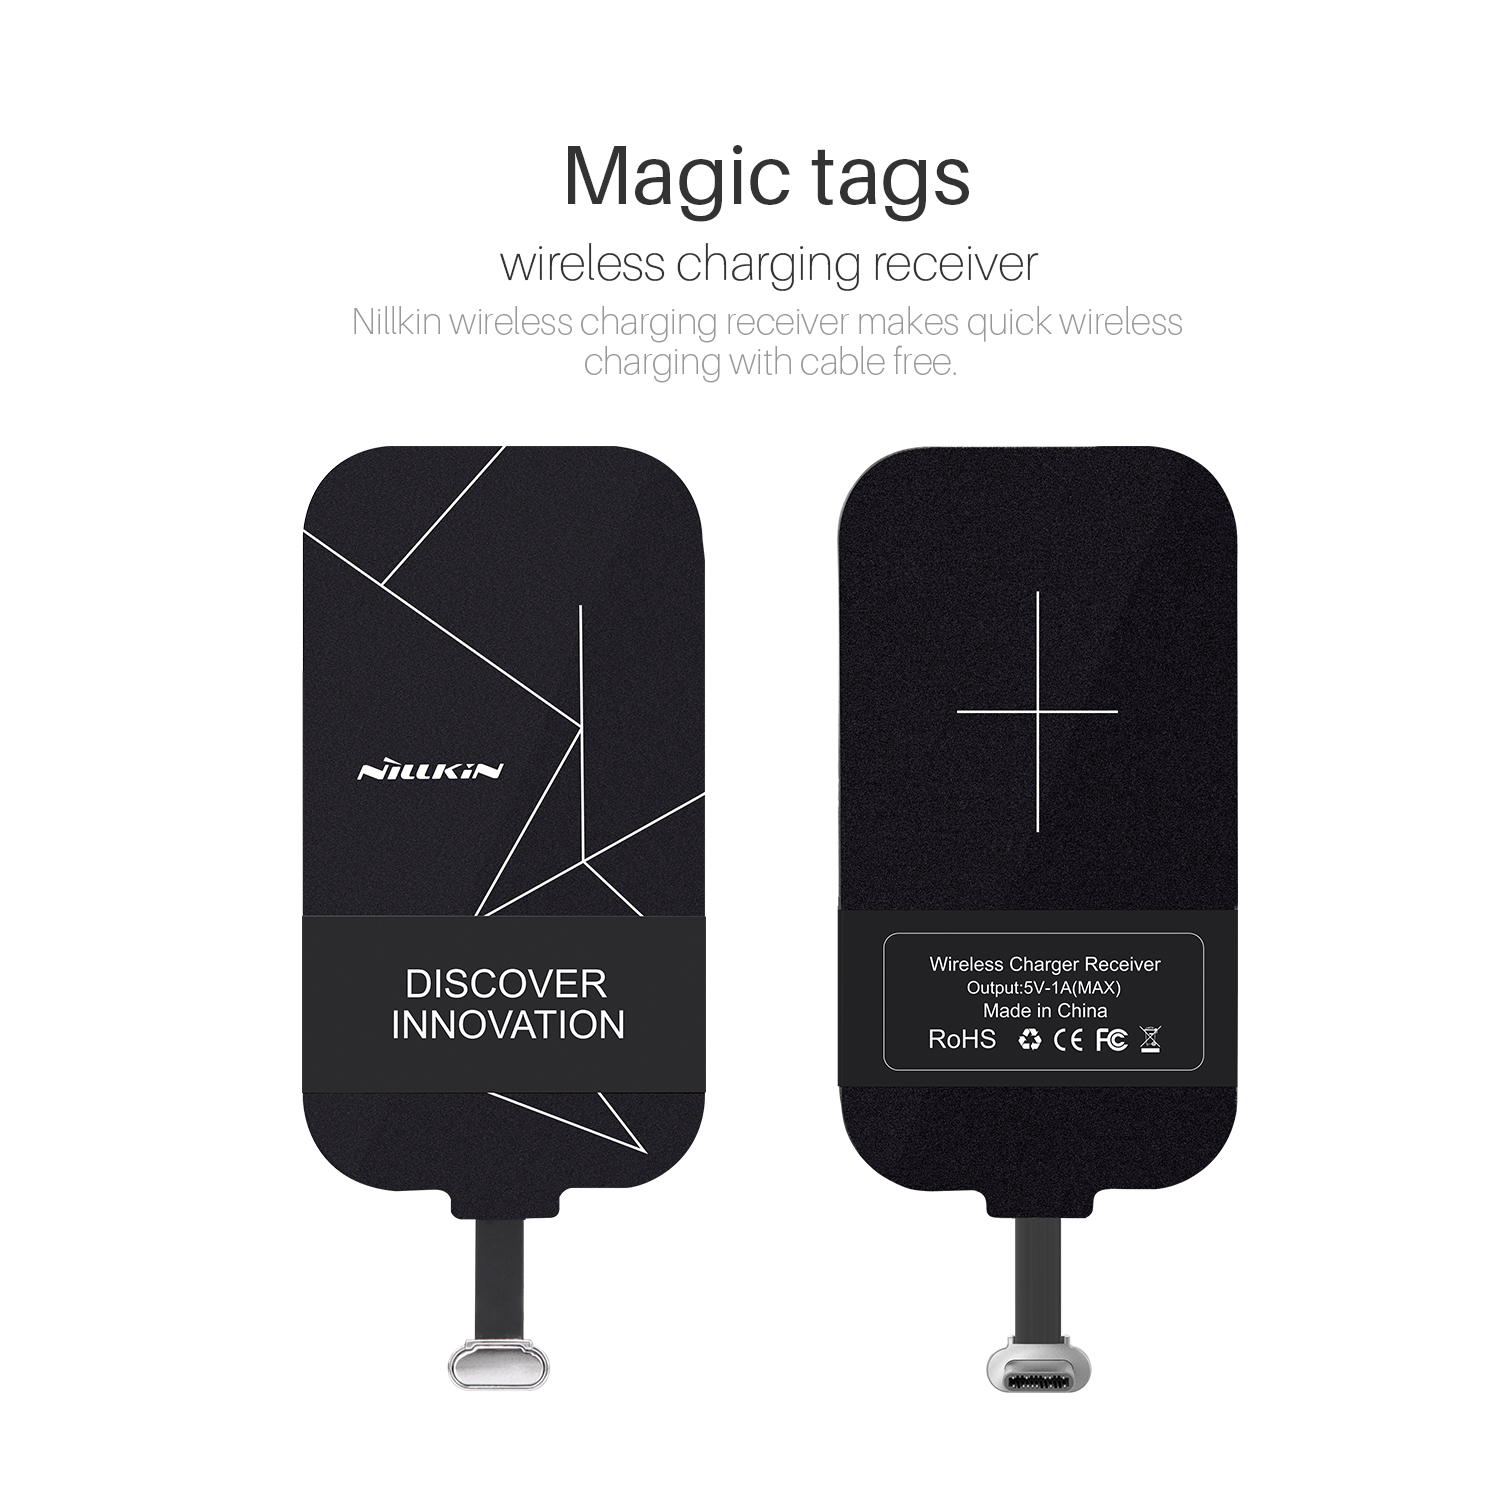 Nillkin Magic tags TYPE-C Wireless Charging Receiver for Oneplus 3/Huawei Honor 8/P9 Lite/Xiaomi Mi5/LG G5 Charger Coil Receiver